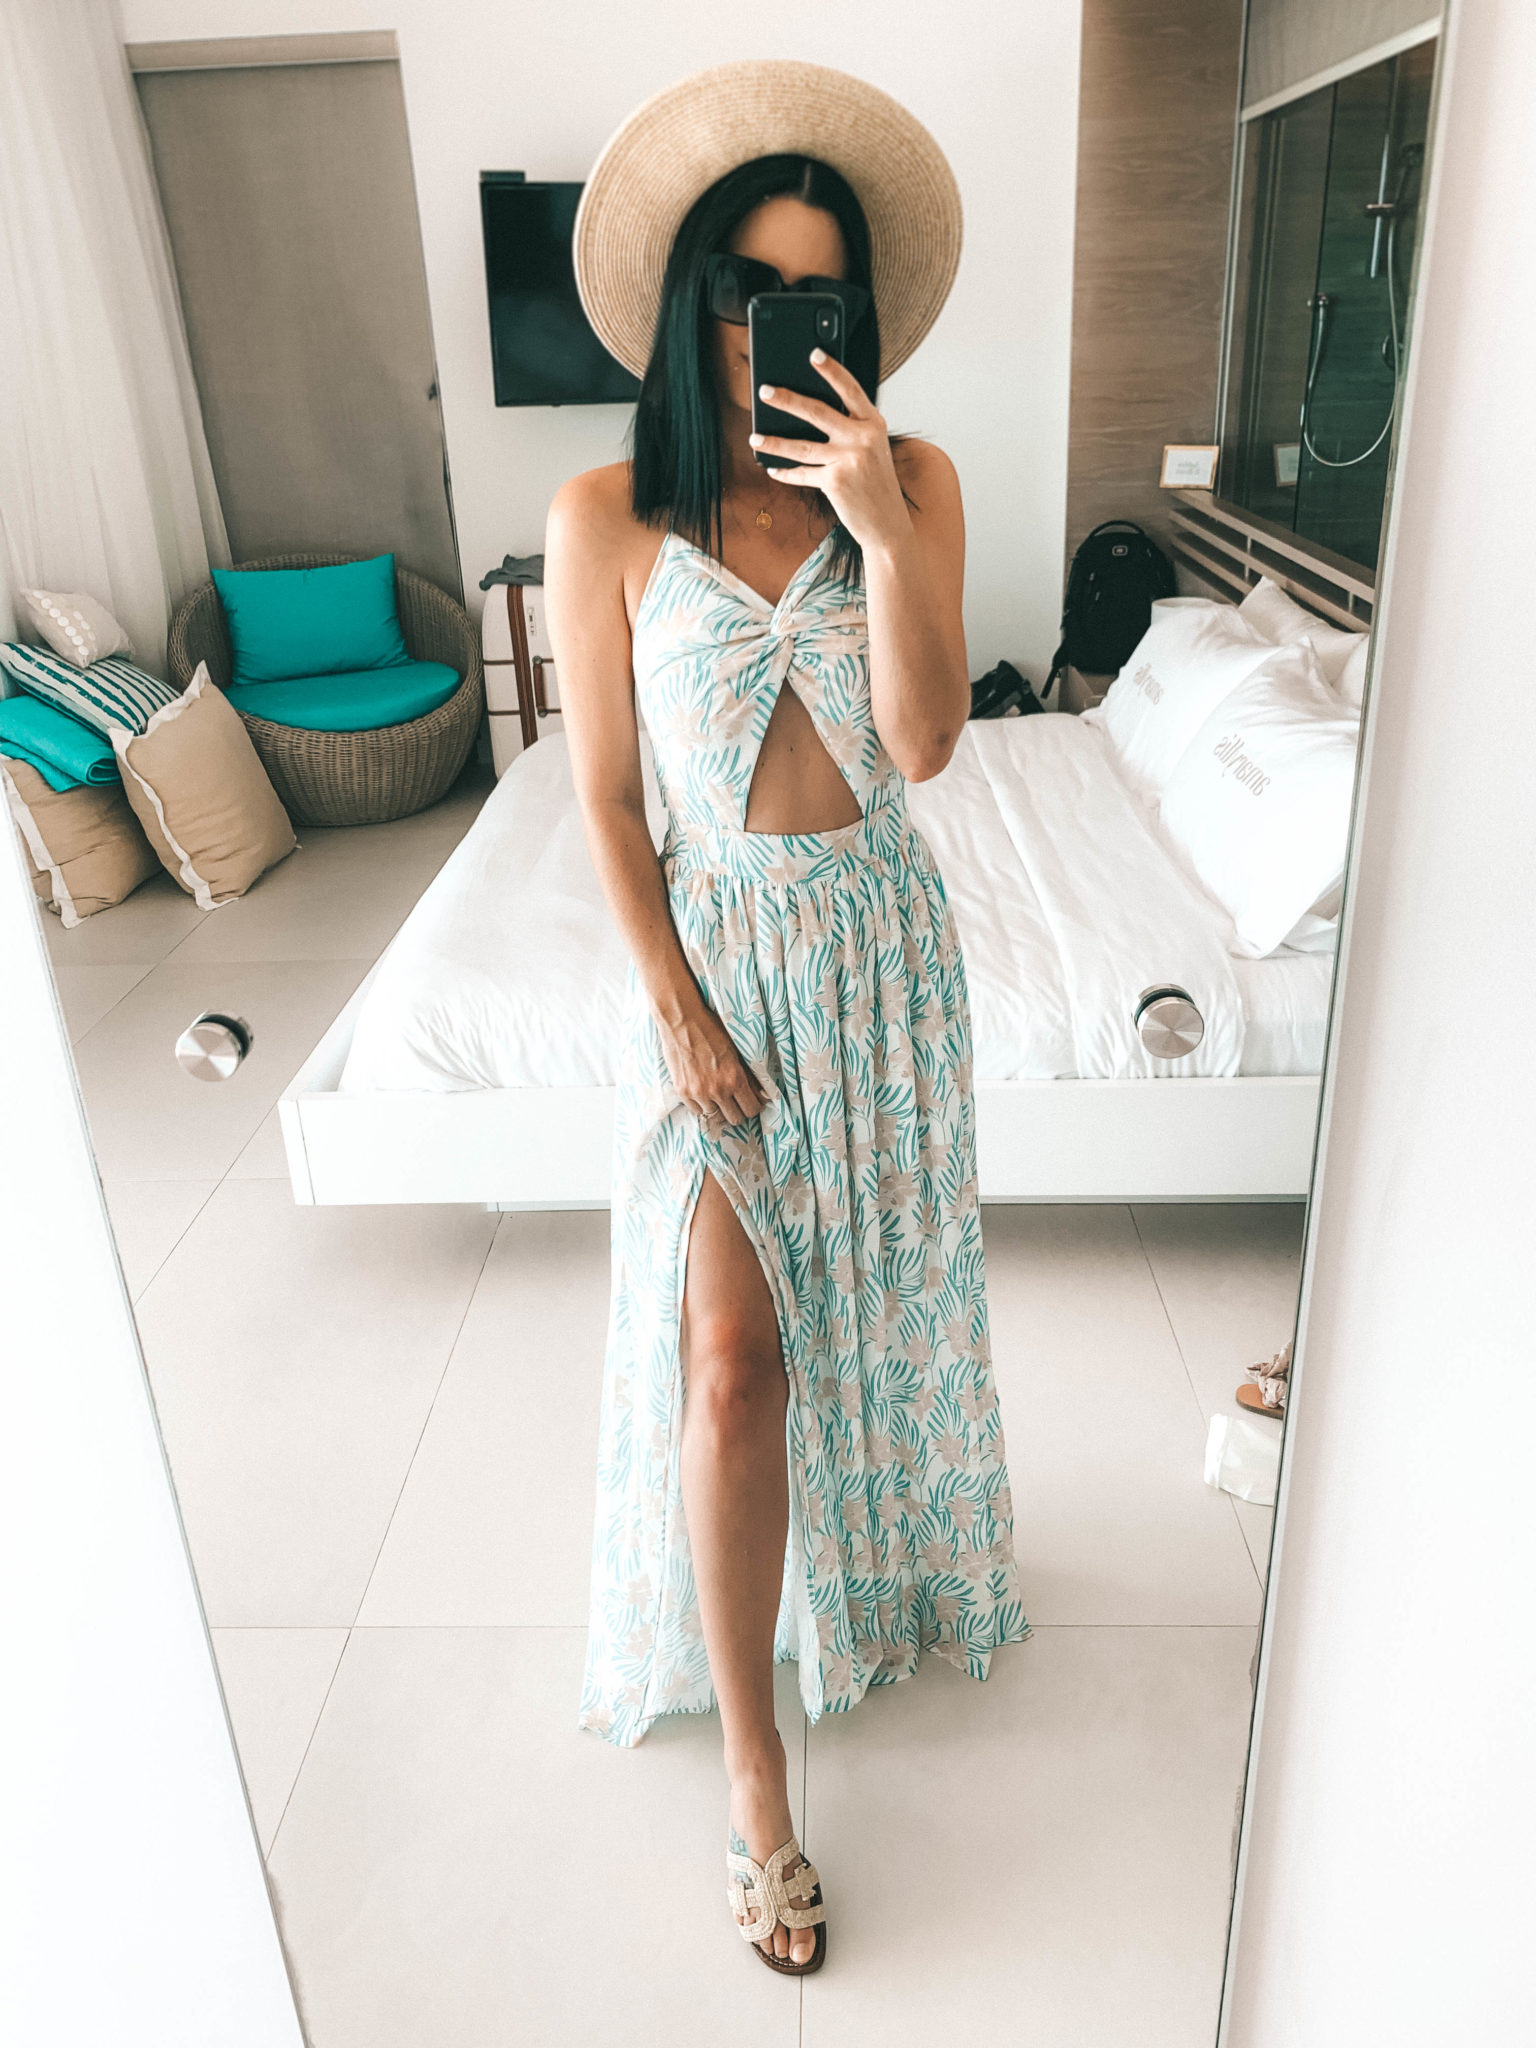 Amaryllis Apparel Abroad Turks & Caicos Summer Try-On by popular Austin fashion blog, Dressed to Kill: image of a woman wearing a Amaryllis Apparel Los Cabos Maxi Dress.